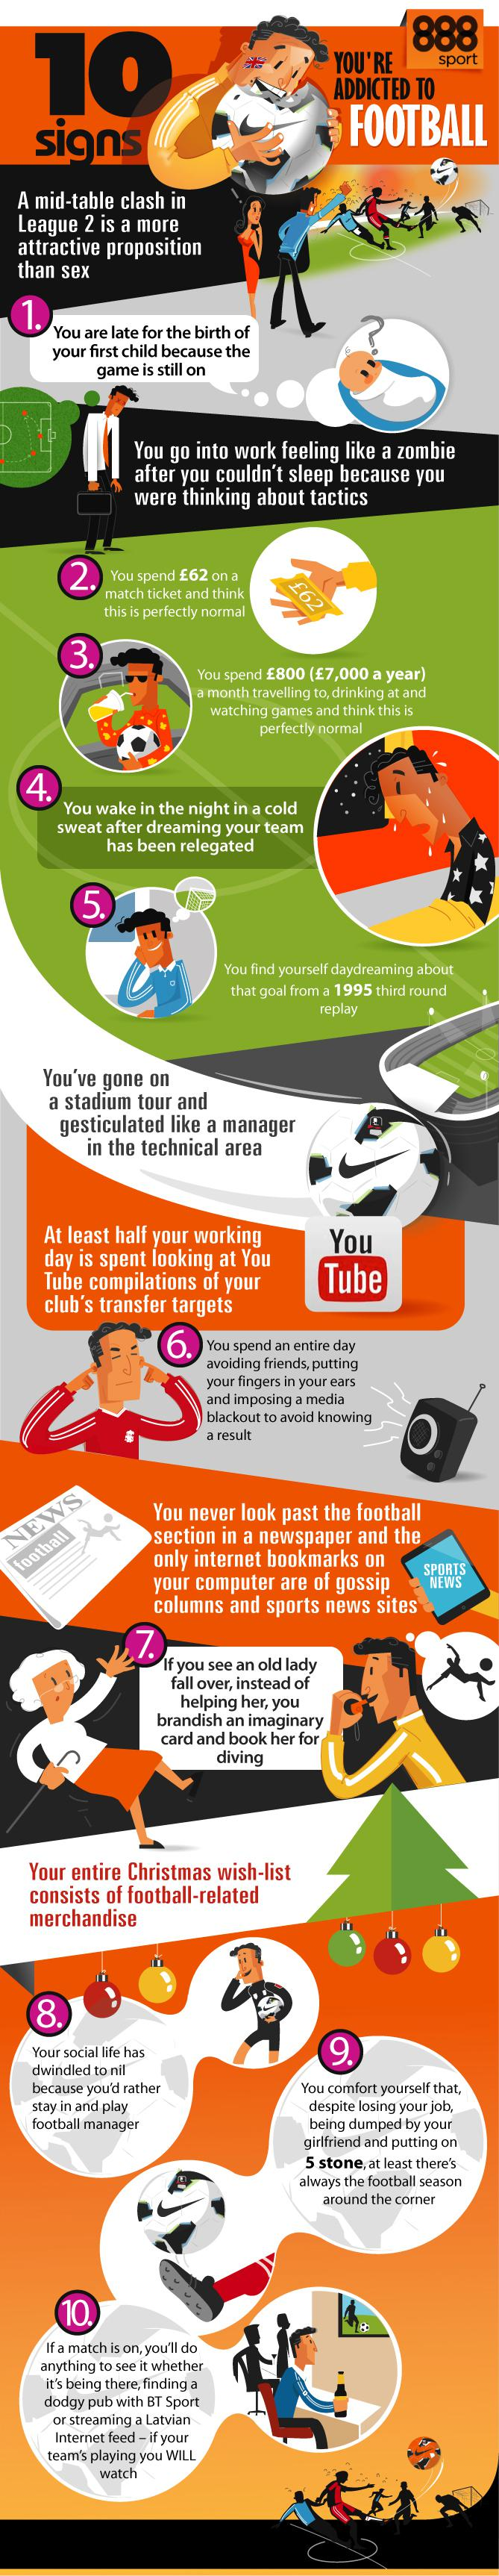 10 Signs You're Addicted to Football